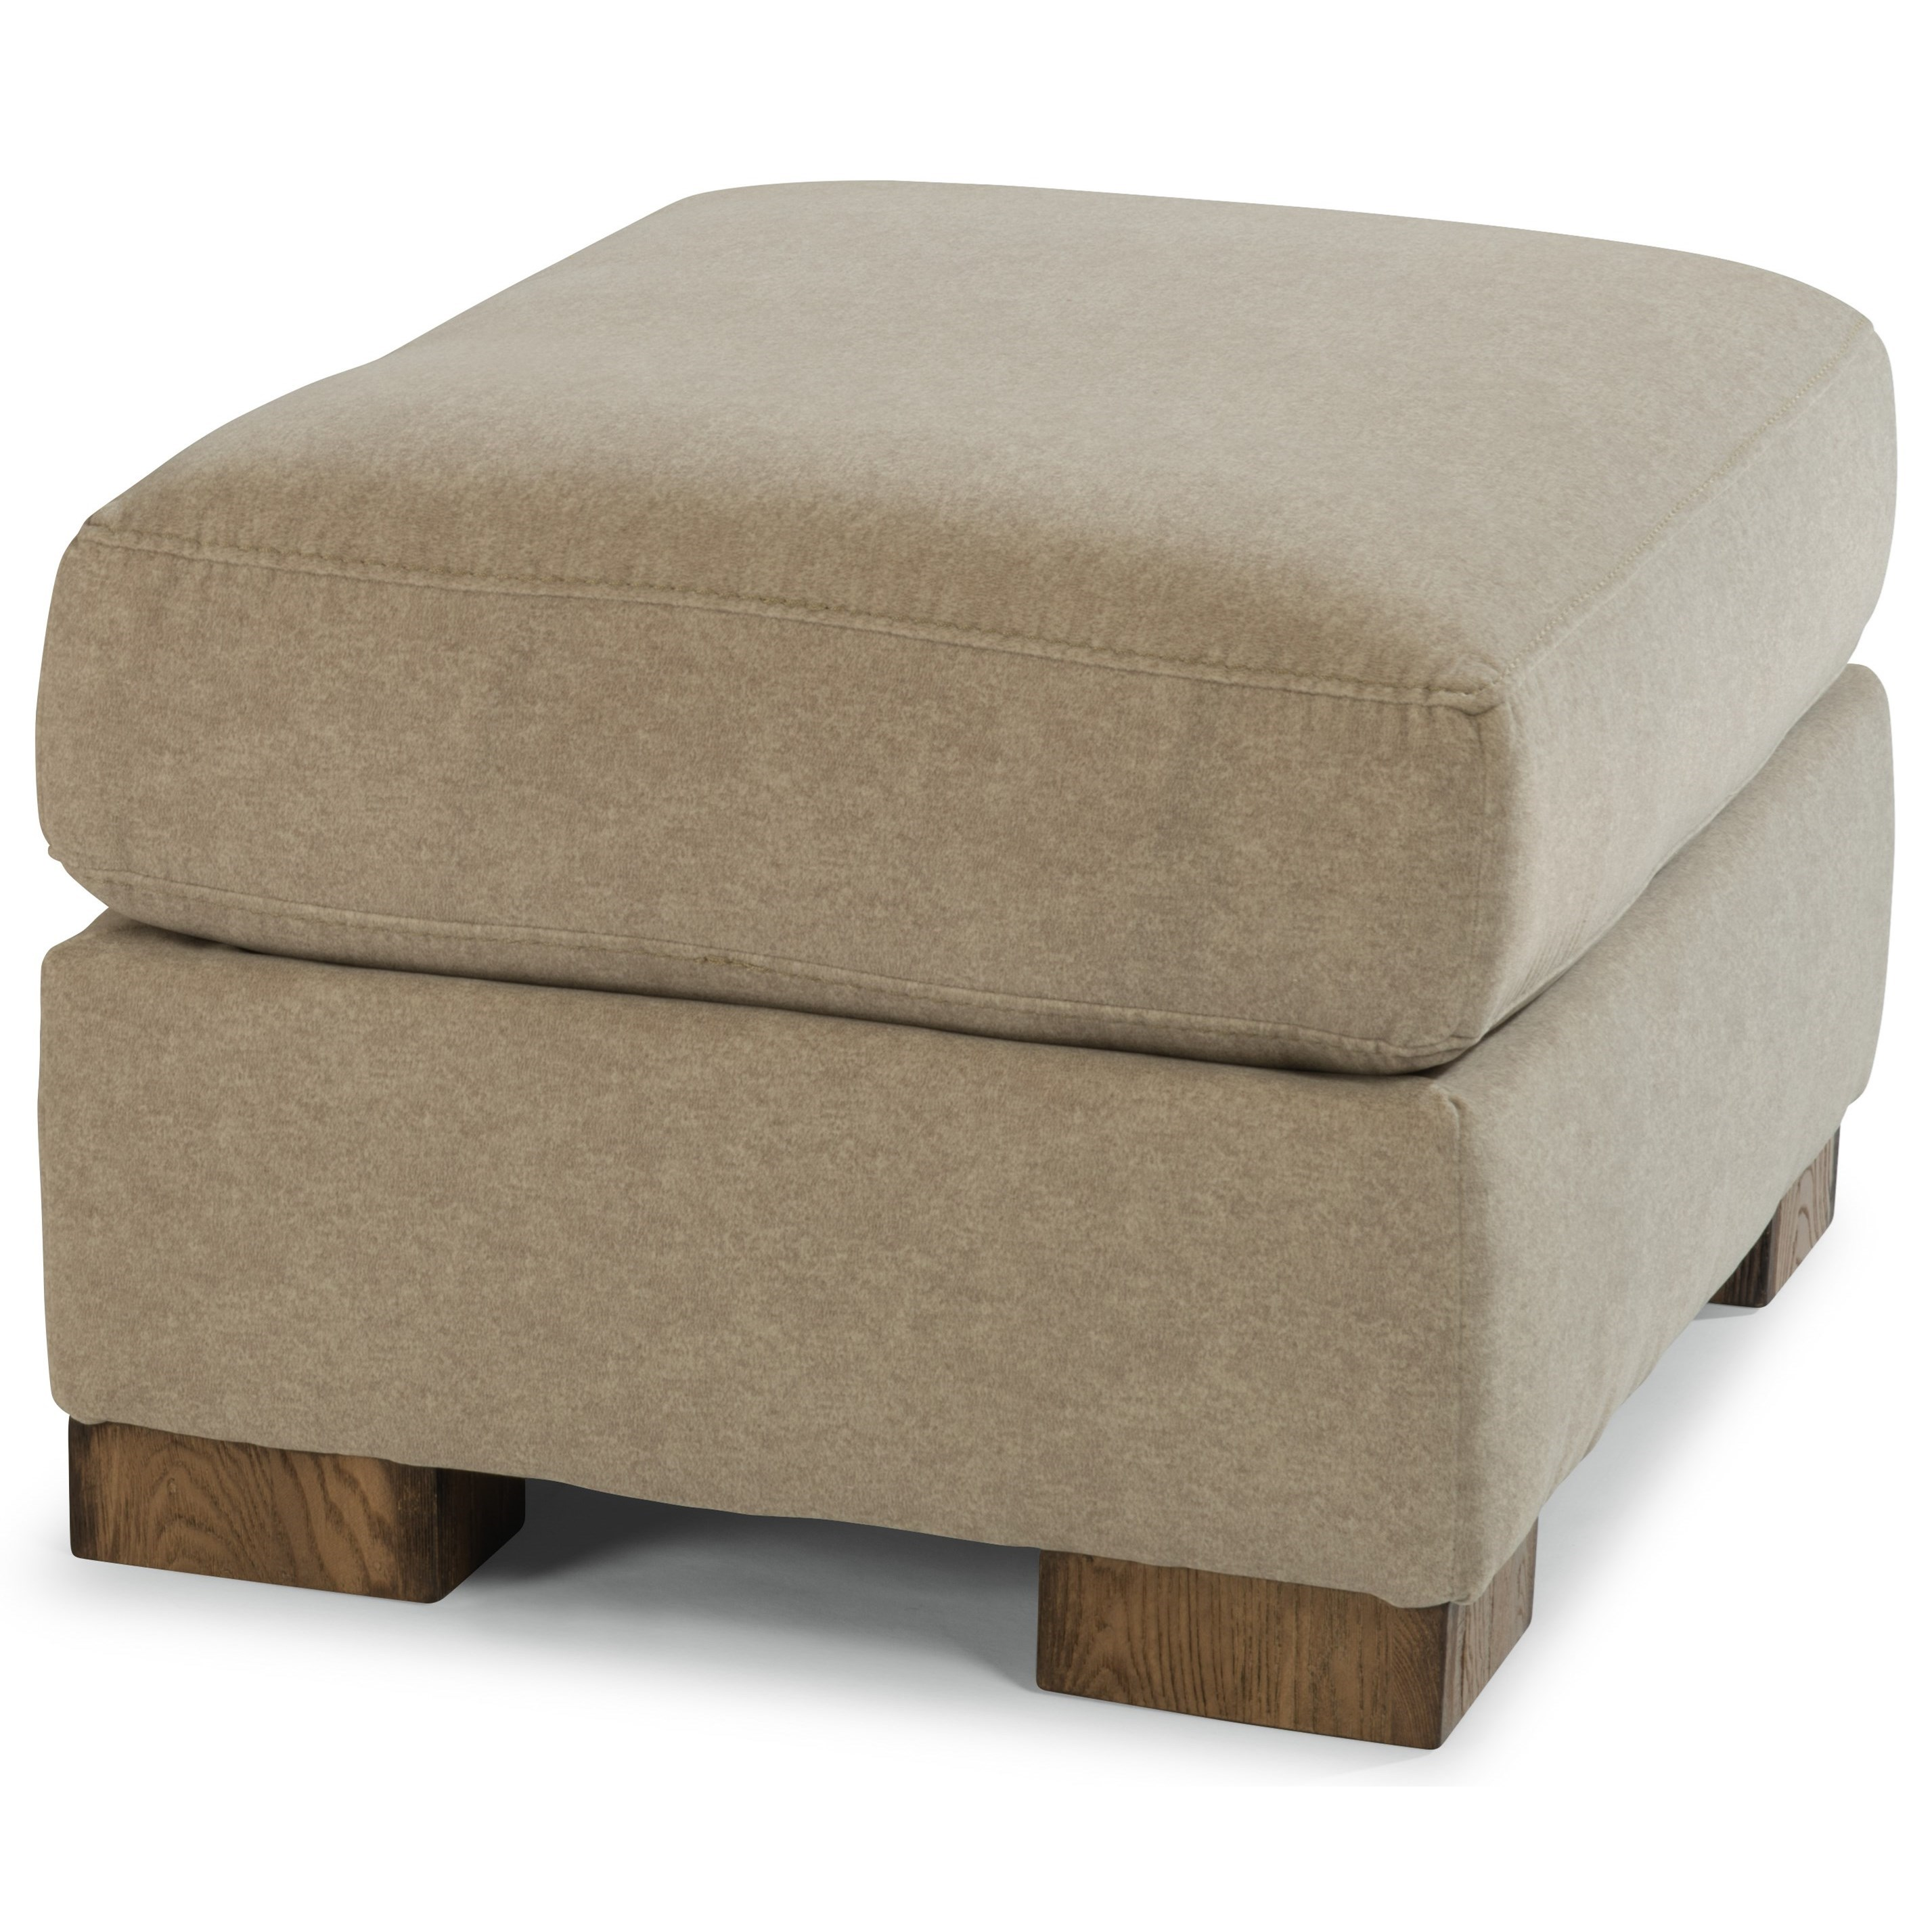 Bryant Ottoman by Flexsteel at Jordan's Home Furnishings